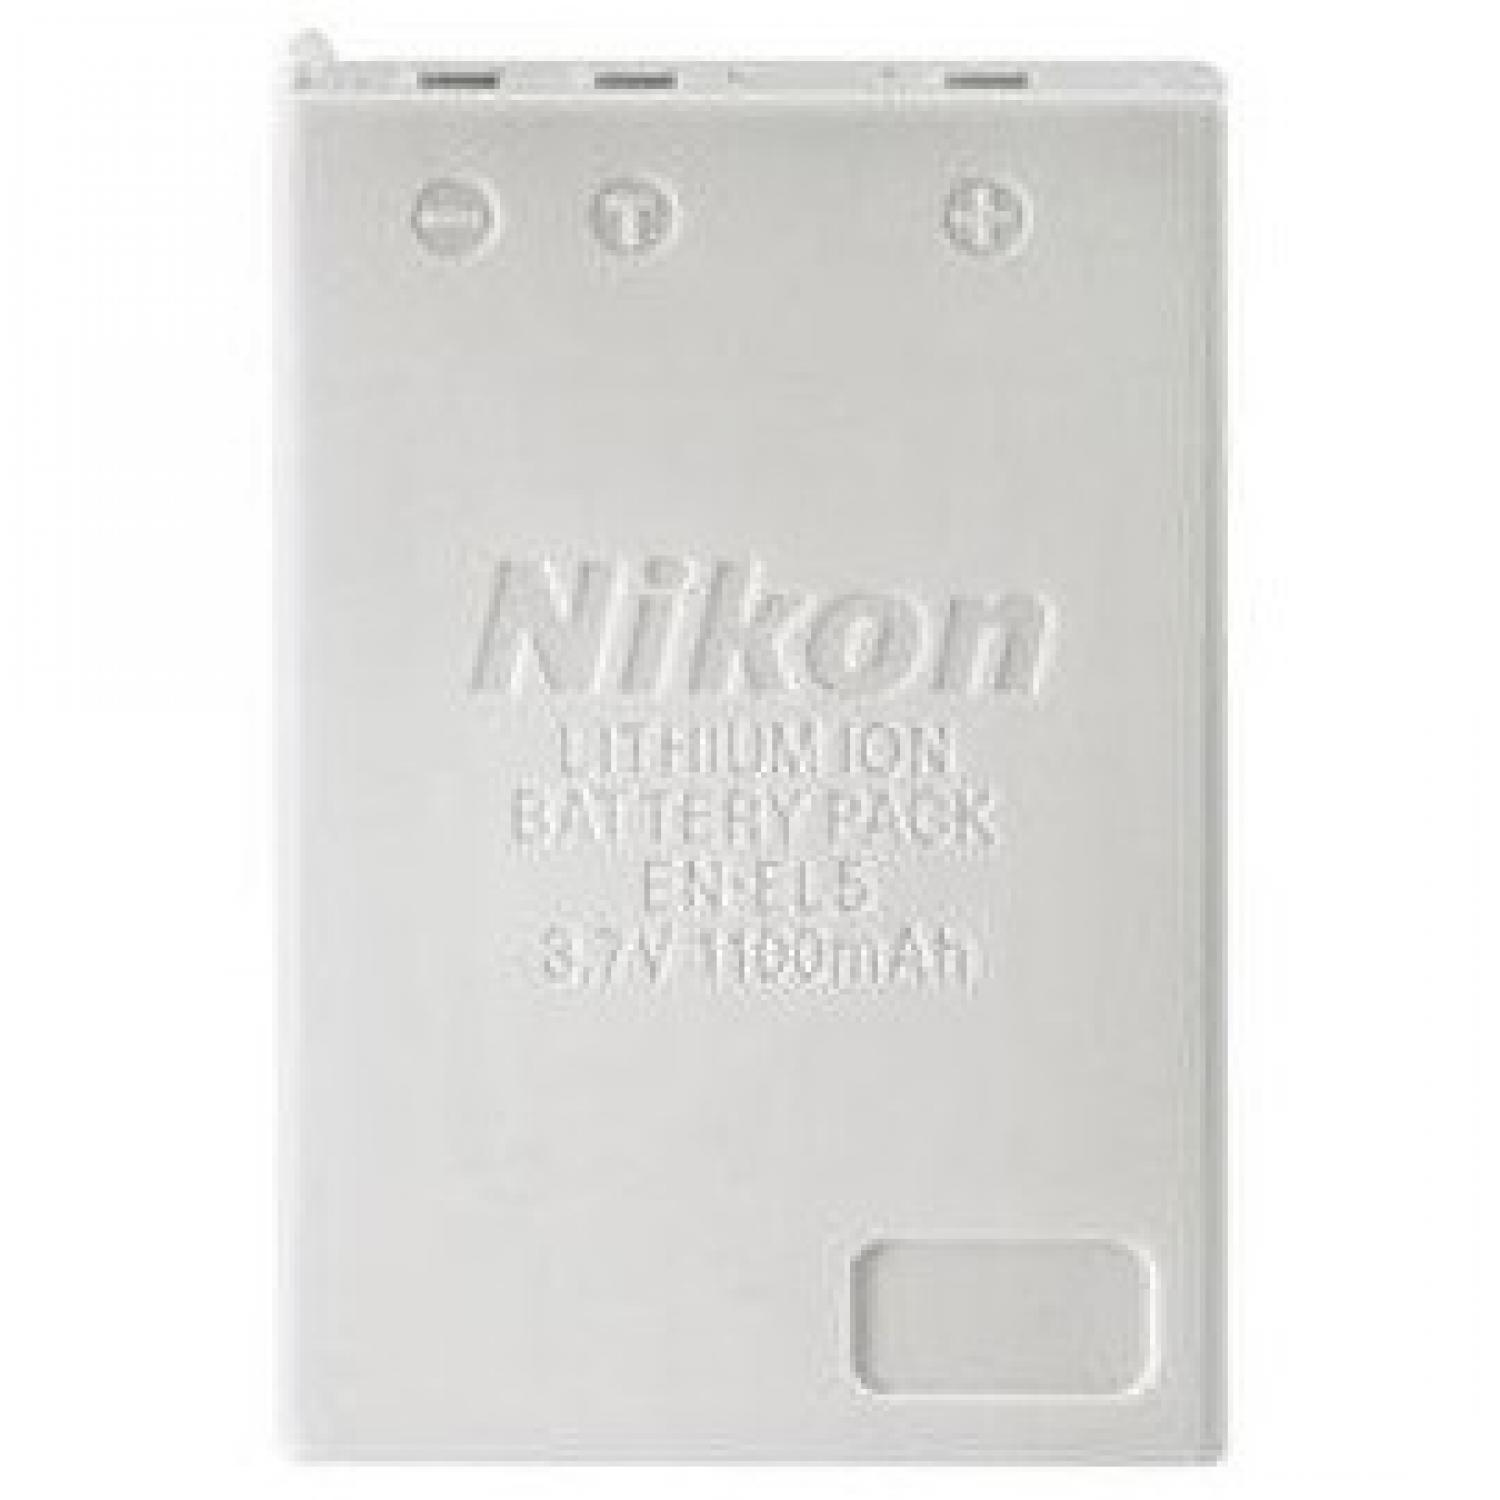 Charger kamera/Charger Kamera canon Battery Replacement for Nikon Coolpix EN-EL5 3700/ 4200/ 5200/ 5900/ 7900/ CP1/ P3/ P4 Series